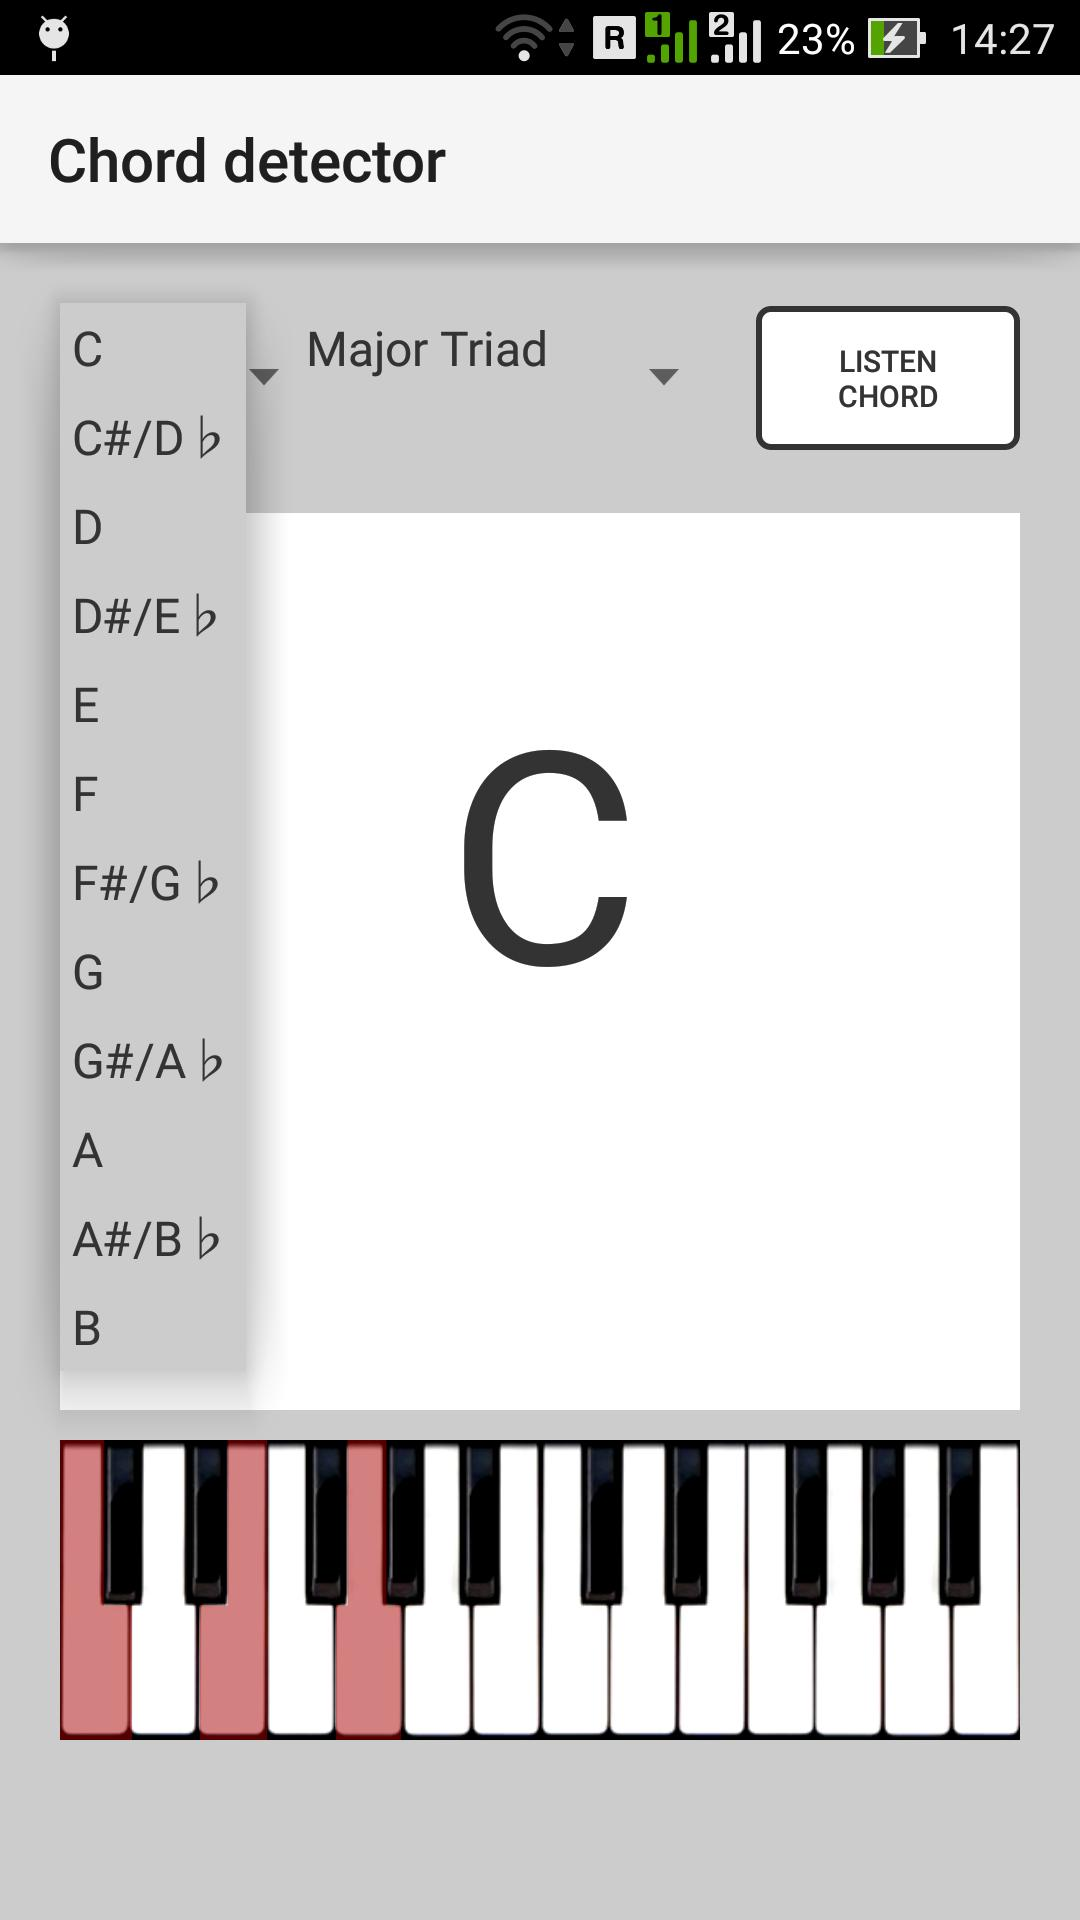 Chord detector for Android - APK Download